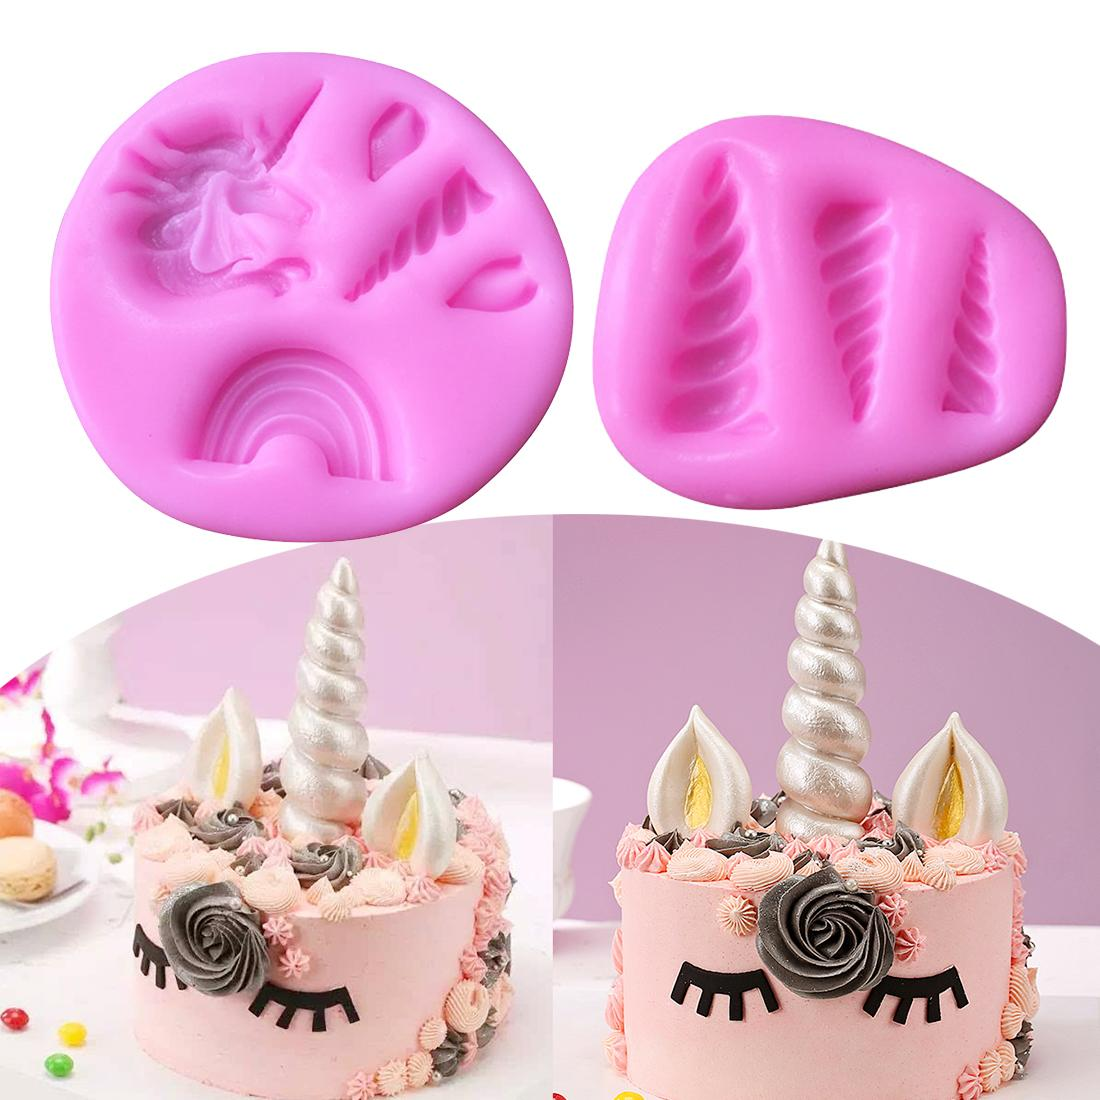 2019 Silicone Cake Mold High Quality Unicorn Shape Bread Pan Chocolate Soap Molds Stencils Bakery Pastry Baking Tools From Herbertw 2276